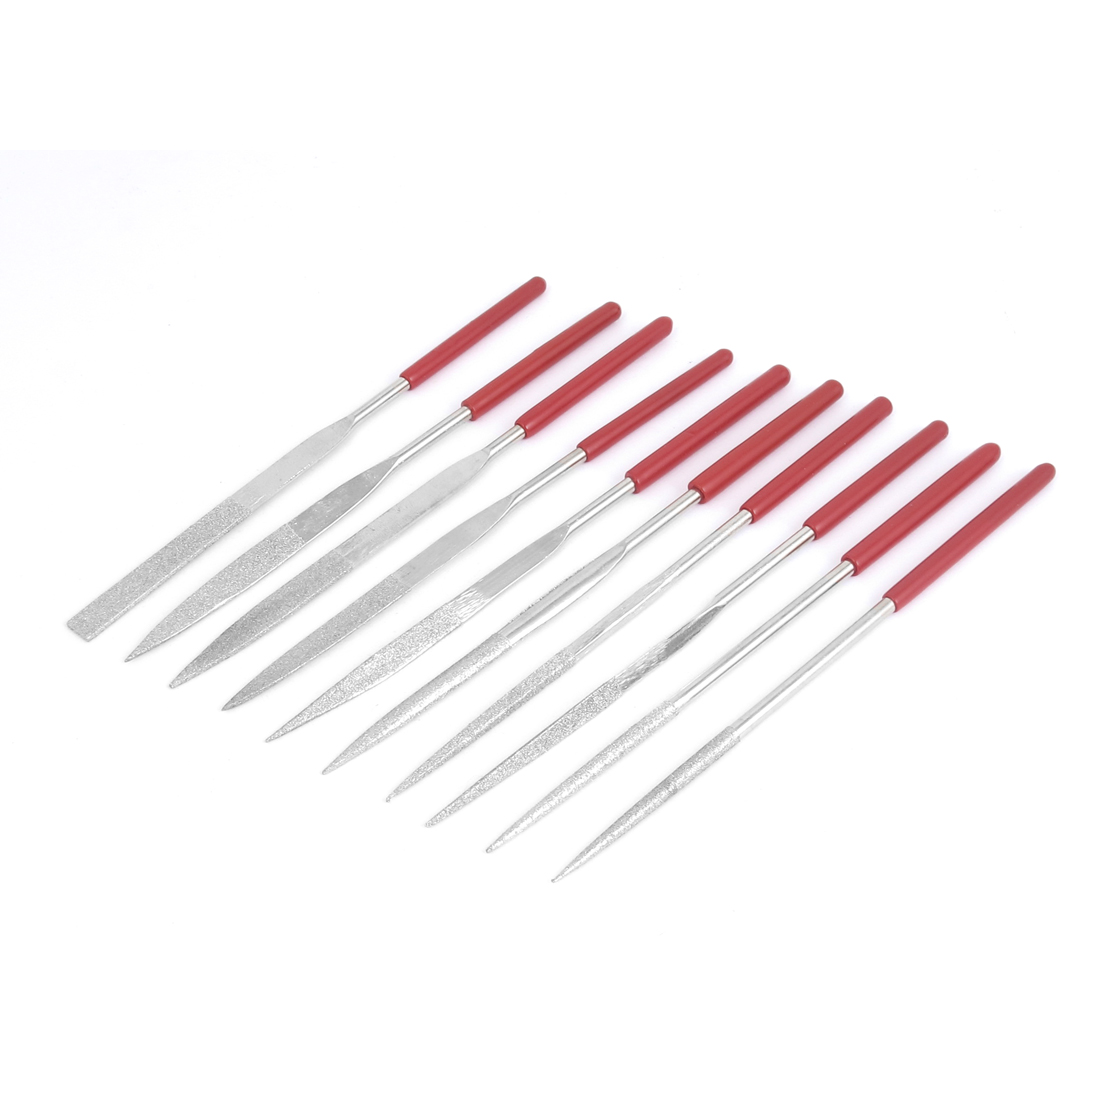 Red Shank Jeweler Tool Woodwork Micro Diamond Metal Needle Files Set 160mm Length 10pcs